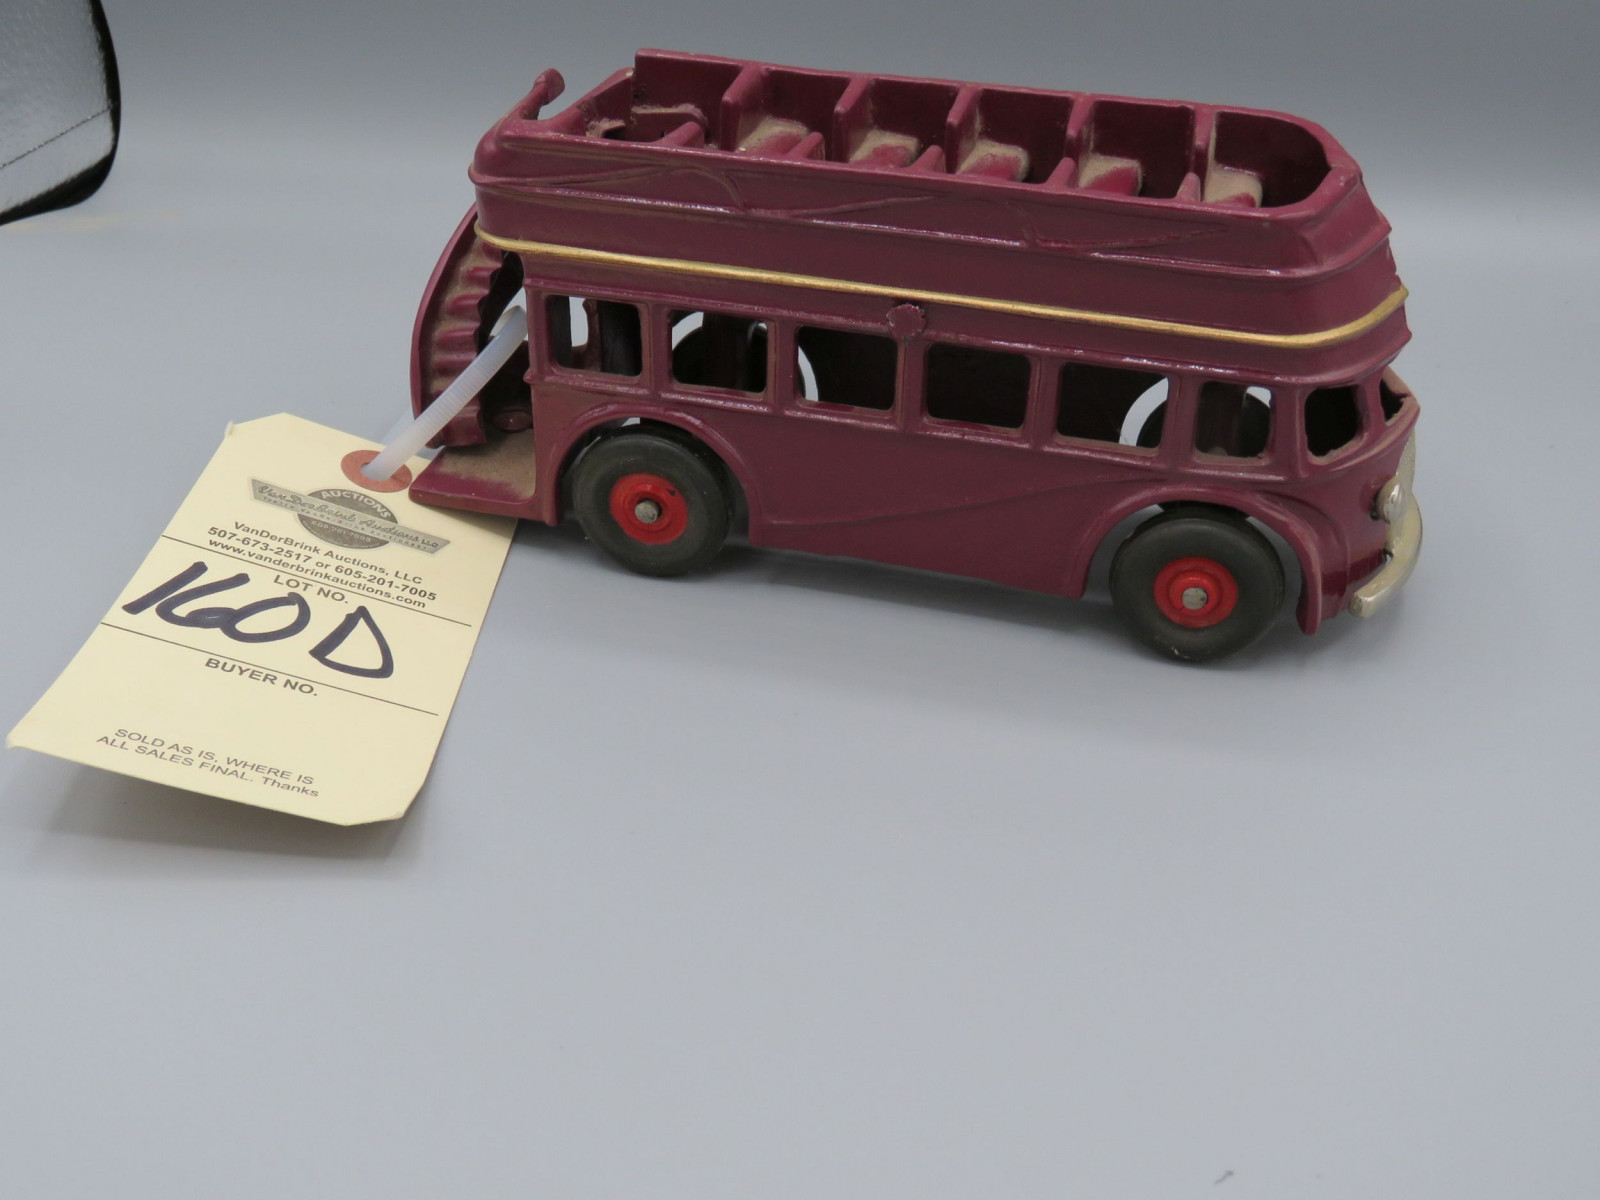 Arcade Double Decker Bus @1939 Approx. 8 inches - Image 1